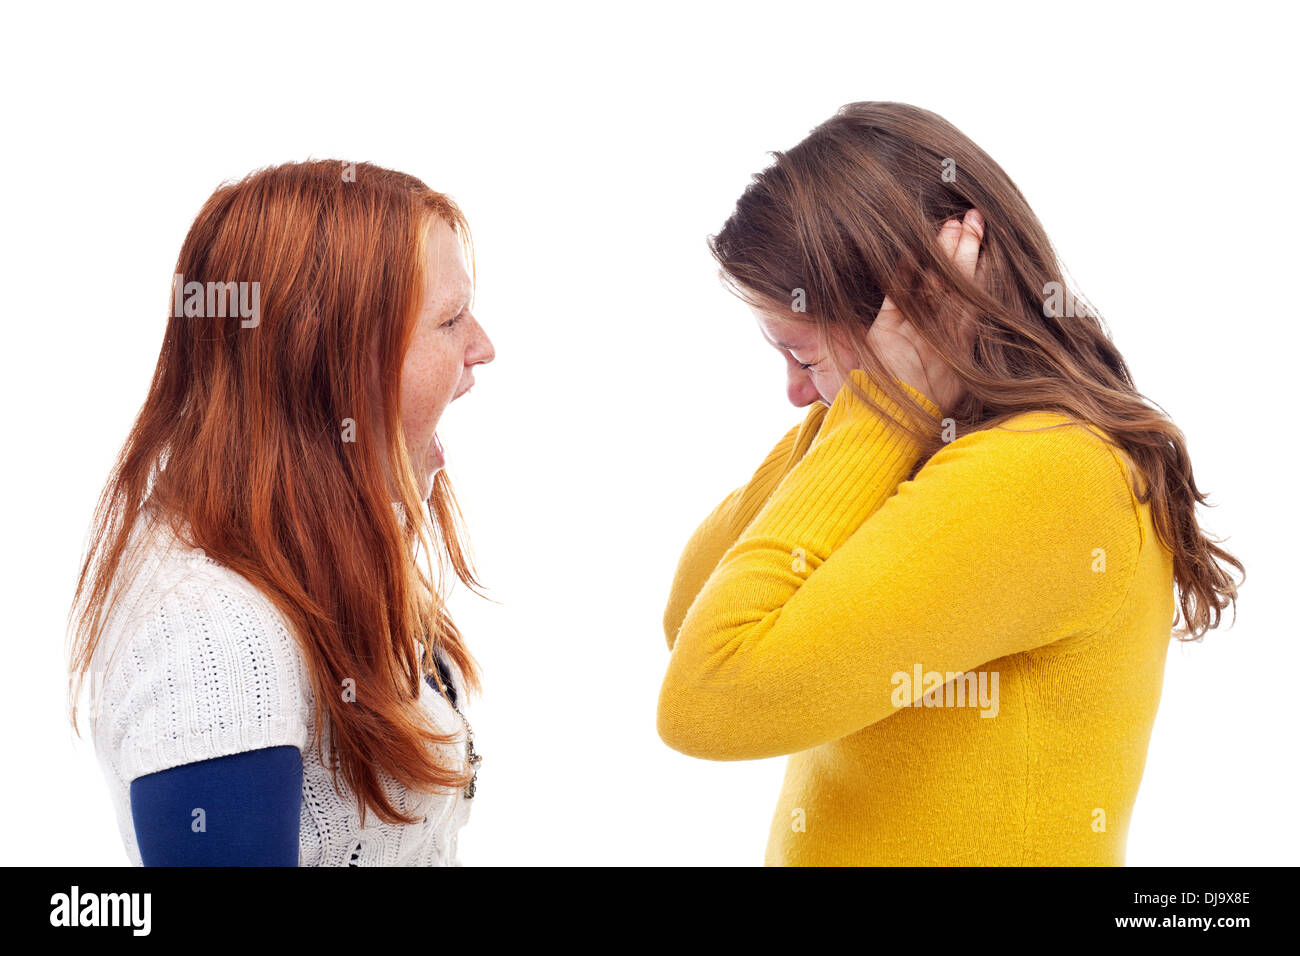 Screaming teens - angry girl screaming at her friend - isolated - Stock Image